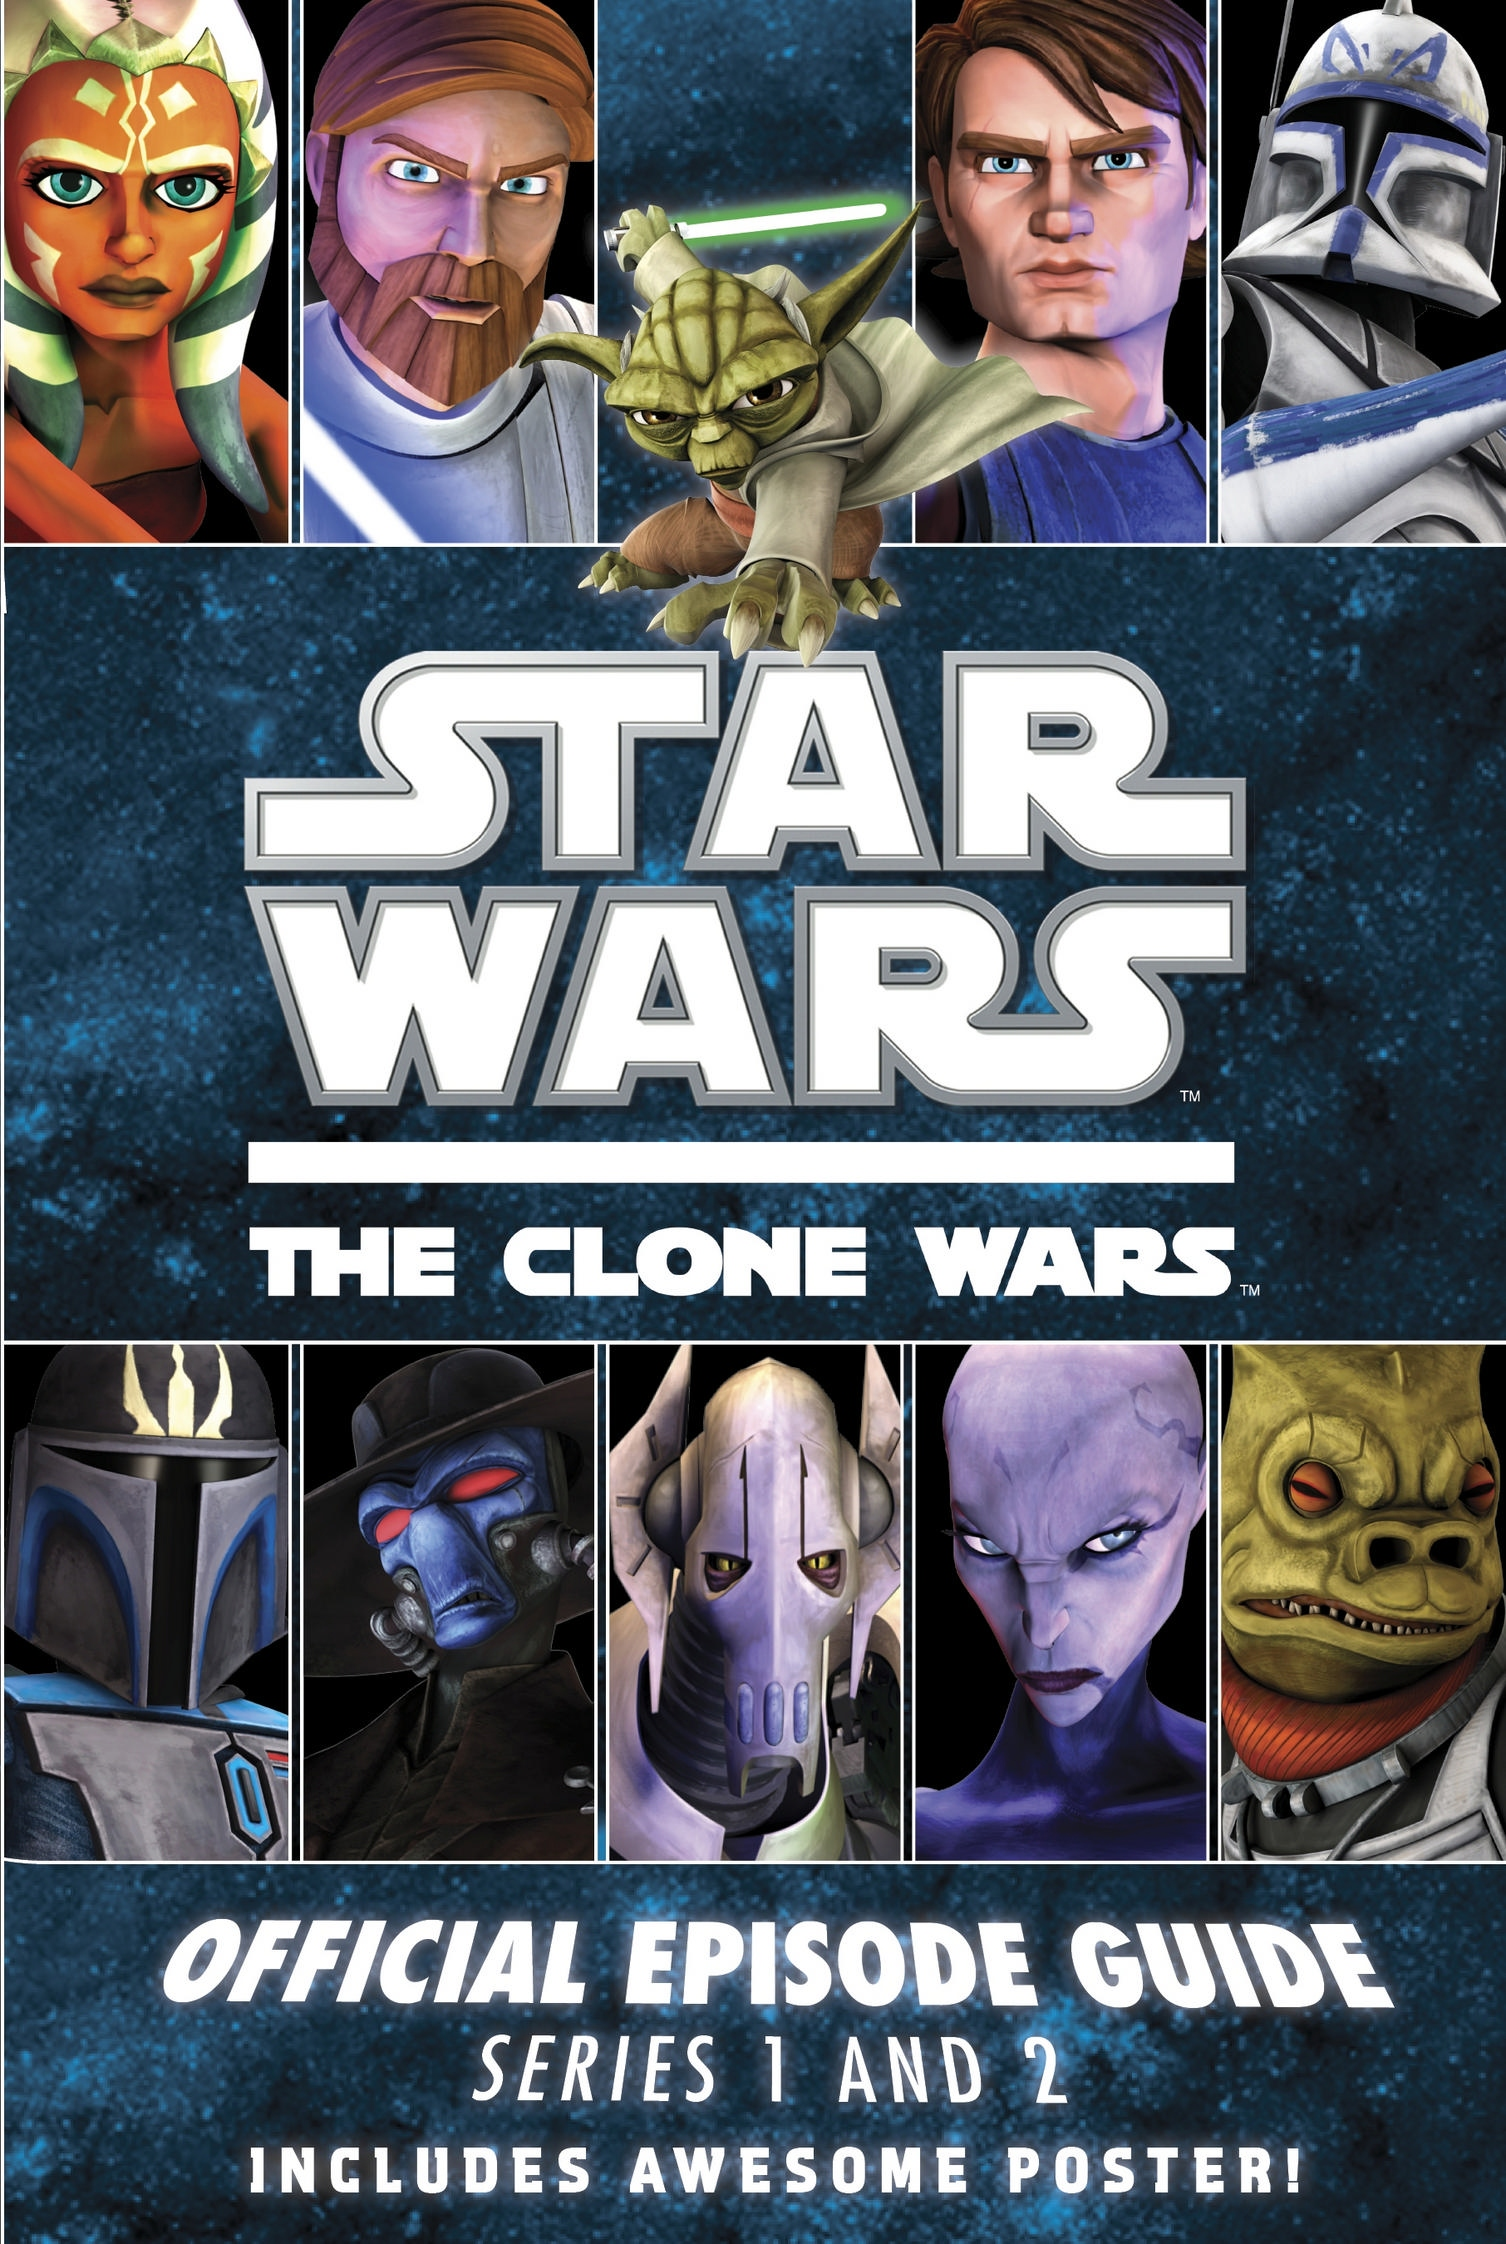 Star Wars The Clone Wars: Official Episode Guide Series 1 and 2